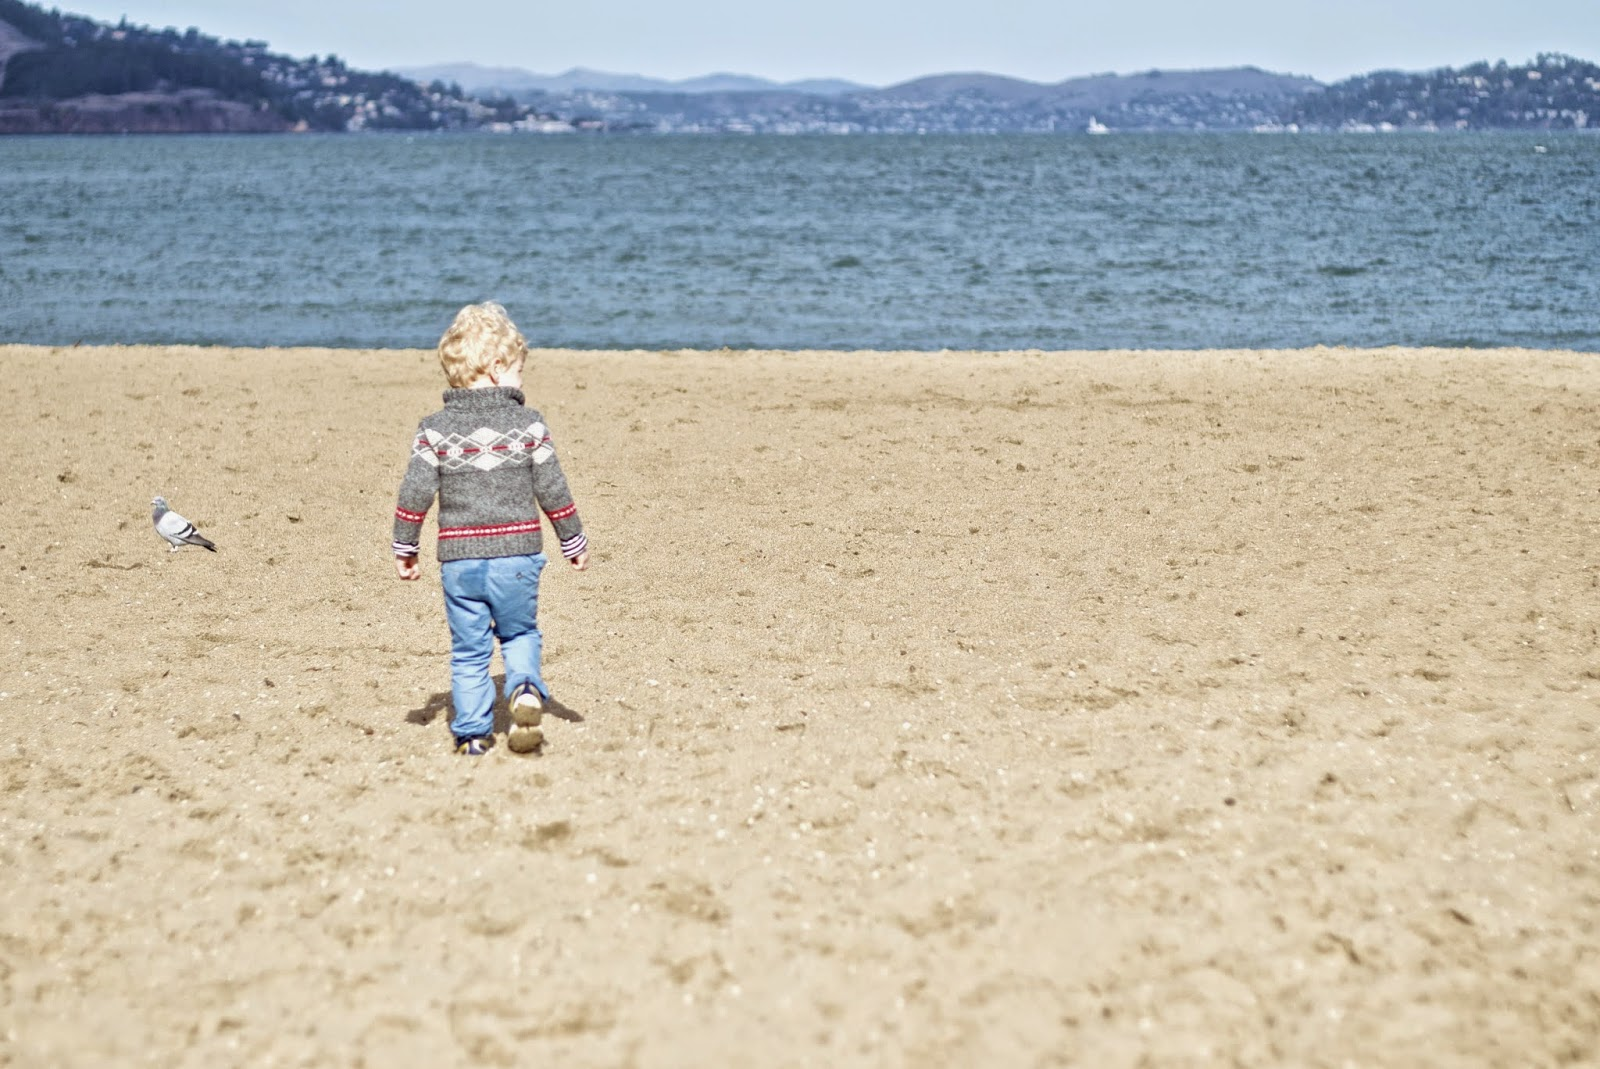 Beaches to play on near the golden gate bridge